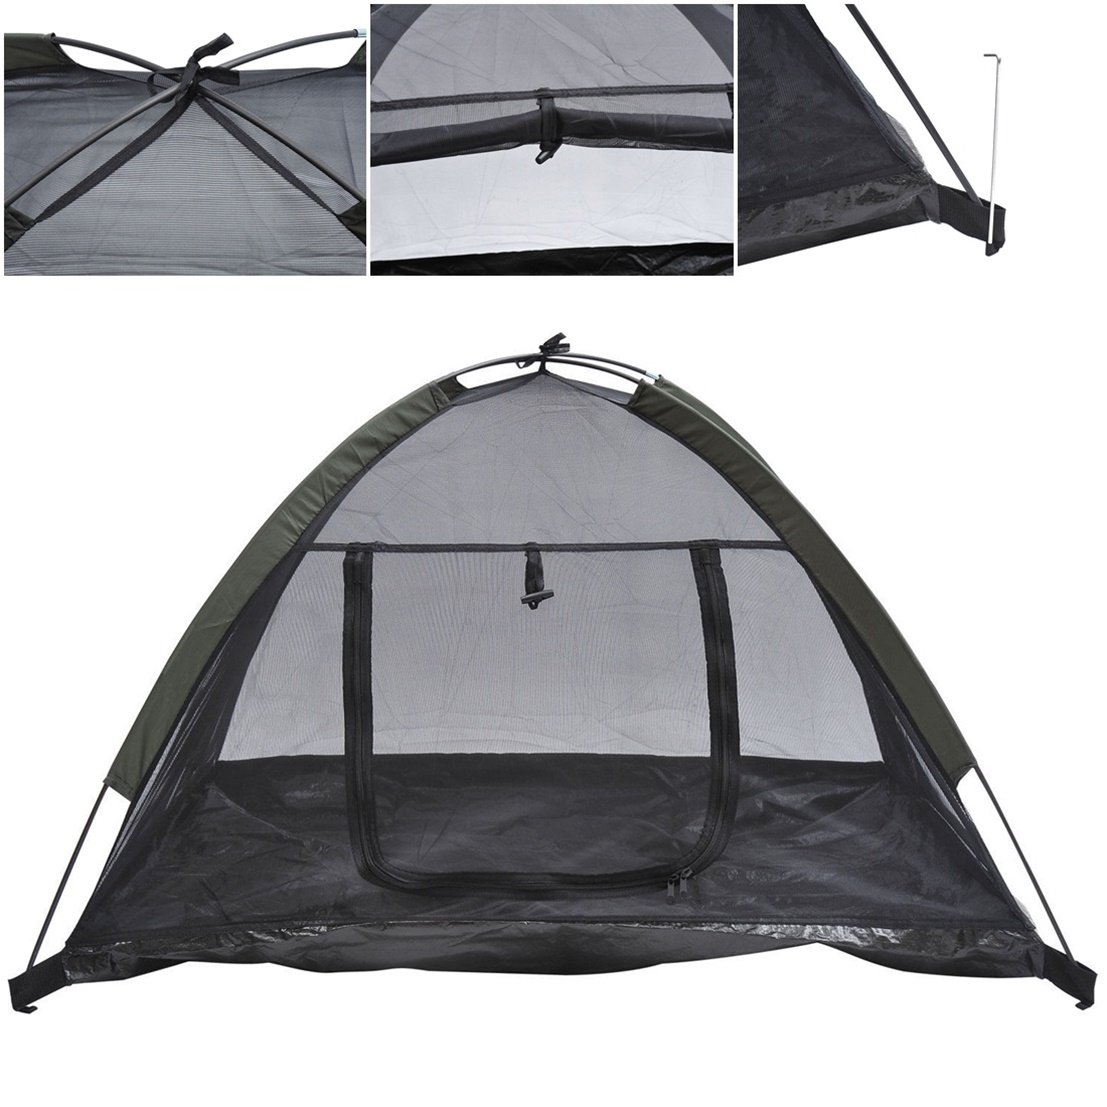 1Pcs Splendid Popular Pet Tent House Cat Beach Shelter Puppy Outdoor Camp Sleeping Couch Color Black